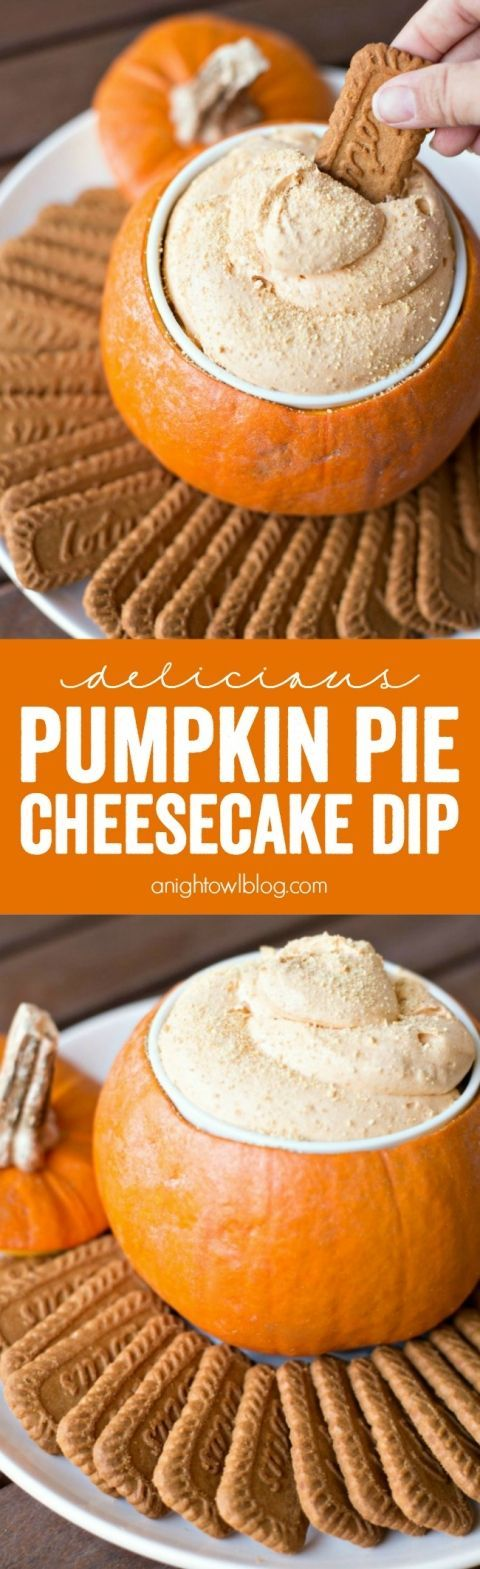 Pumpkin Pie Cheesecake Dip - A breeze to make and the perfect sweet holiday appetizer!